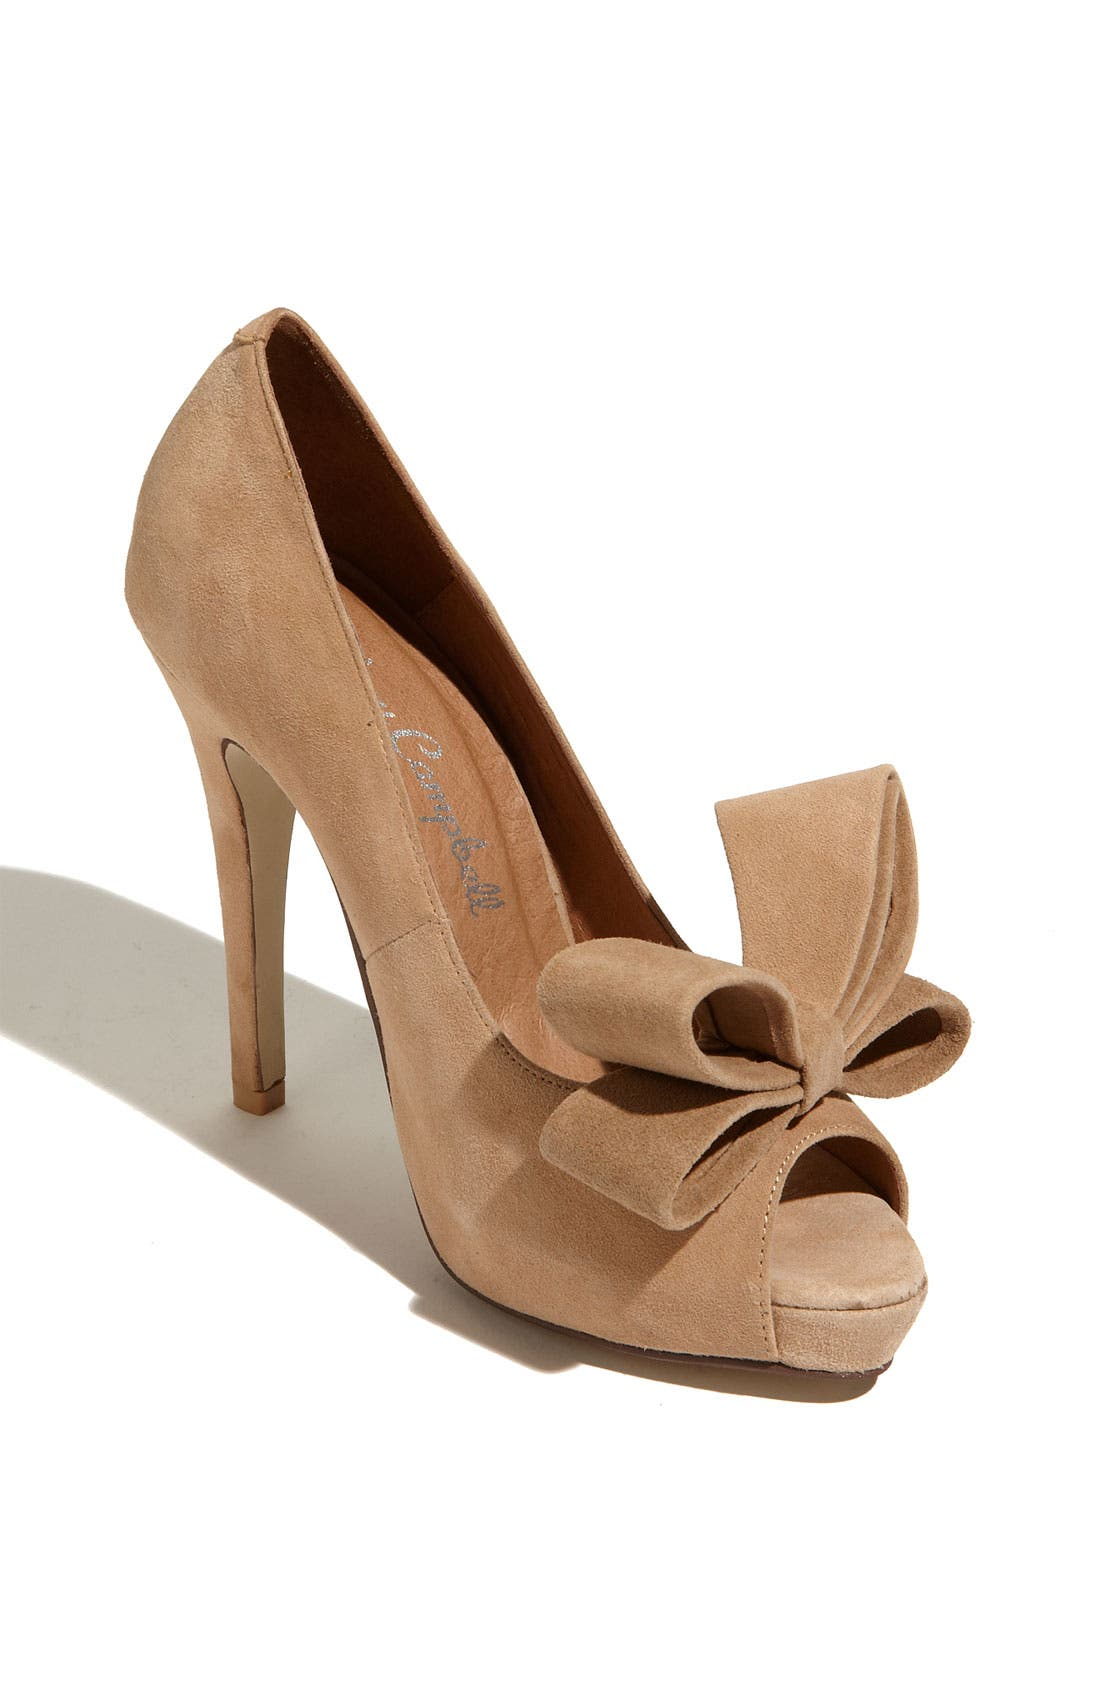 Main Image - Jeffrey Campbell 'Garret' Pump